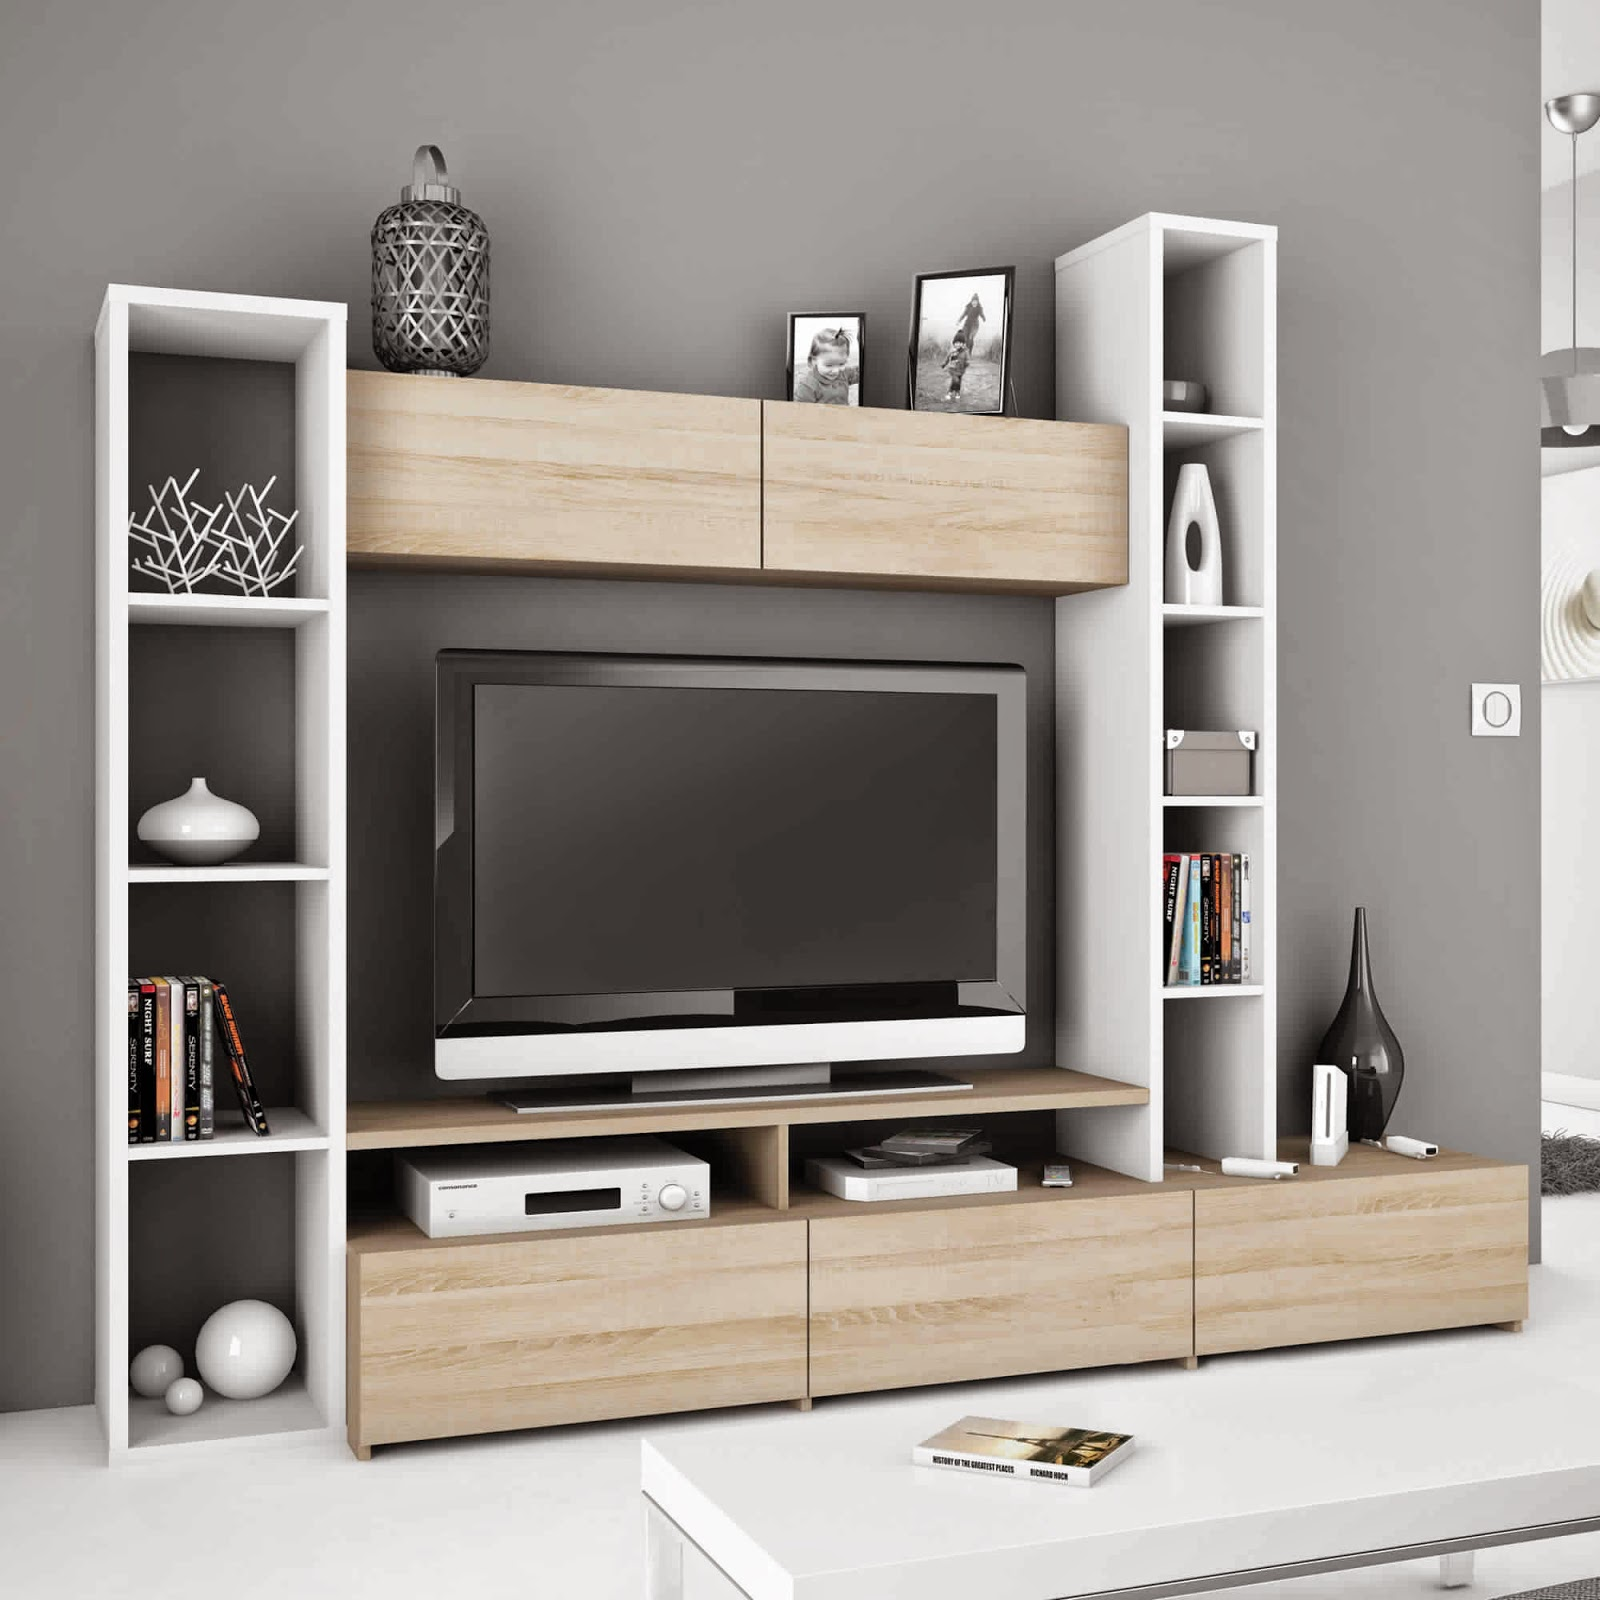 Meuble Tv Rangement Dvd - Meuble Tv Avec Rangement Dvd Sellingstg Com[mjhdah]http://i1.wp.com/brl.press/wp-content/uploads/2016/05/meubles-tv-rangement-meuble-tv-design-mobile-elegance-avec-rangement-cables-la-decoration-o-ikea-07071053-hifi-range-dvd-cable-cd-et-conforama-tm-969-1024×1024.jpg?resizeu003d450,300